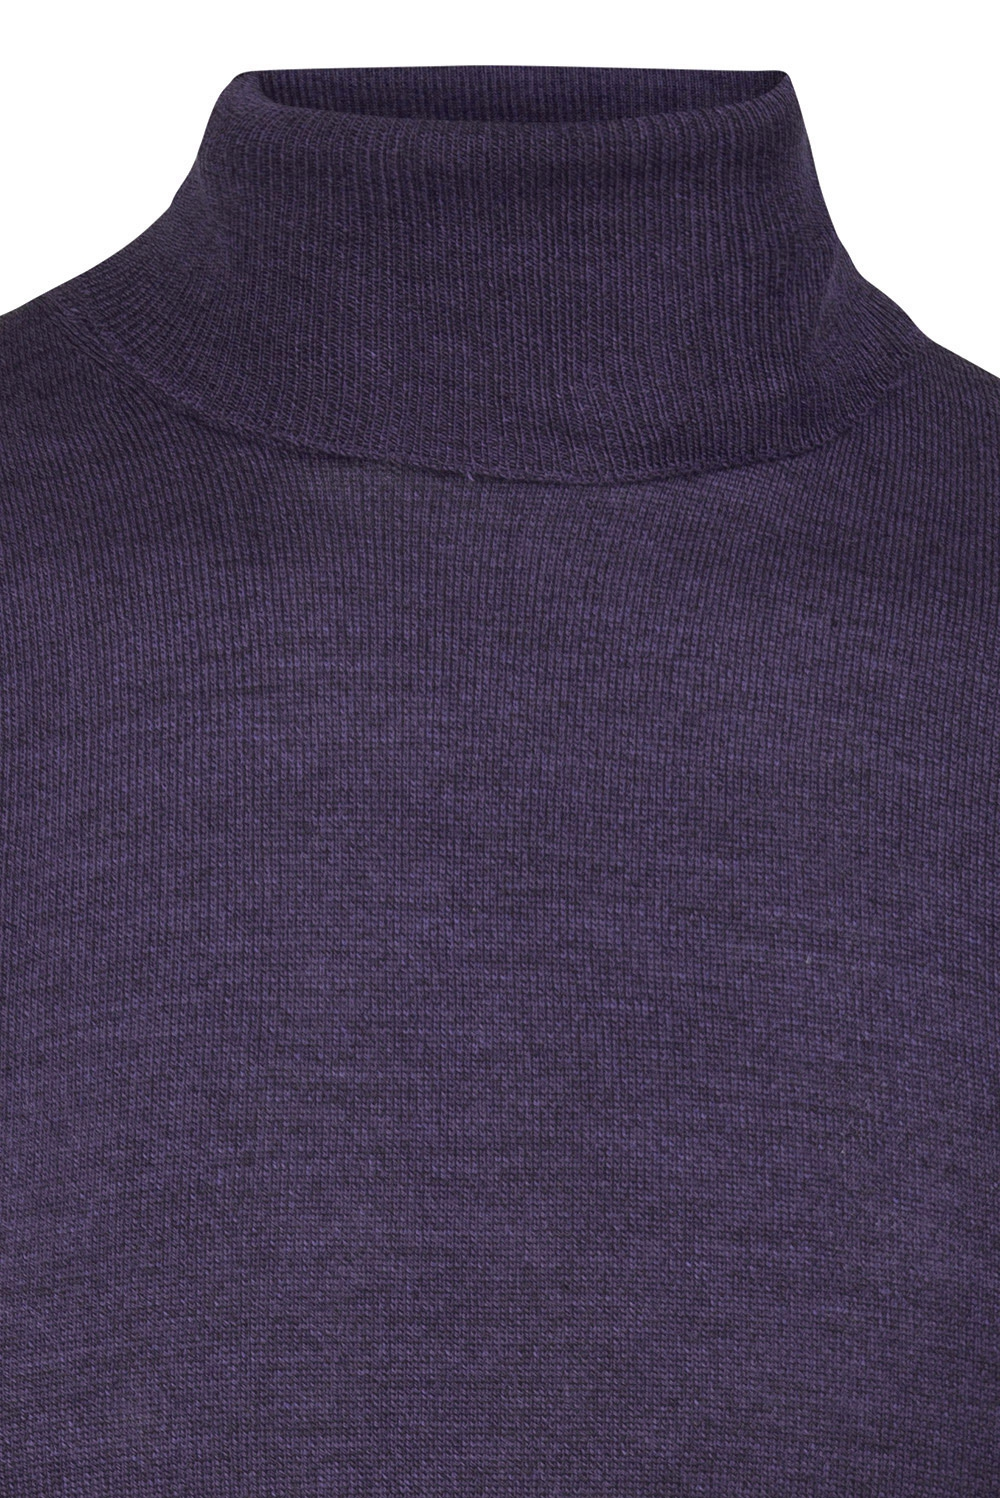 Slim Purple Sweater 3